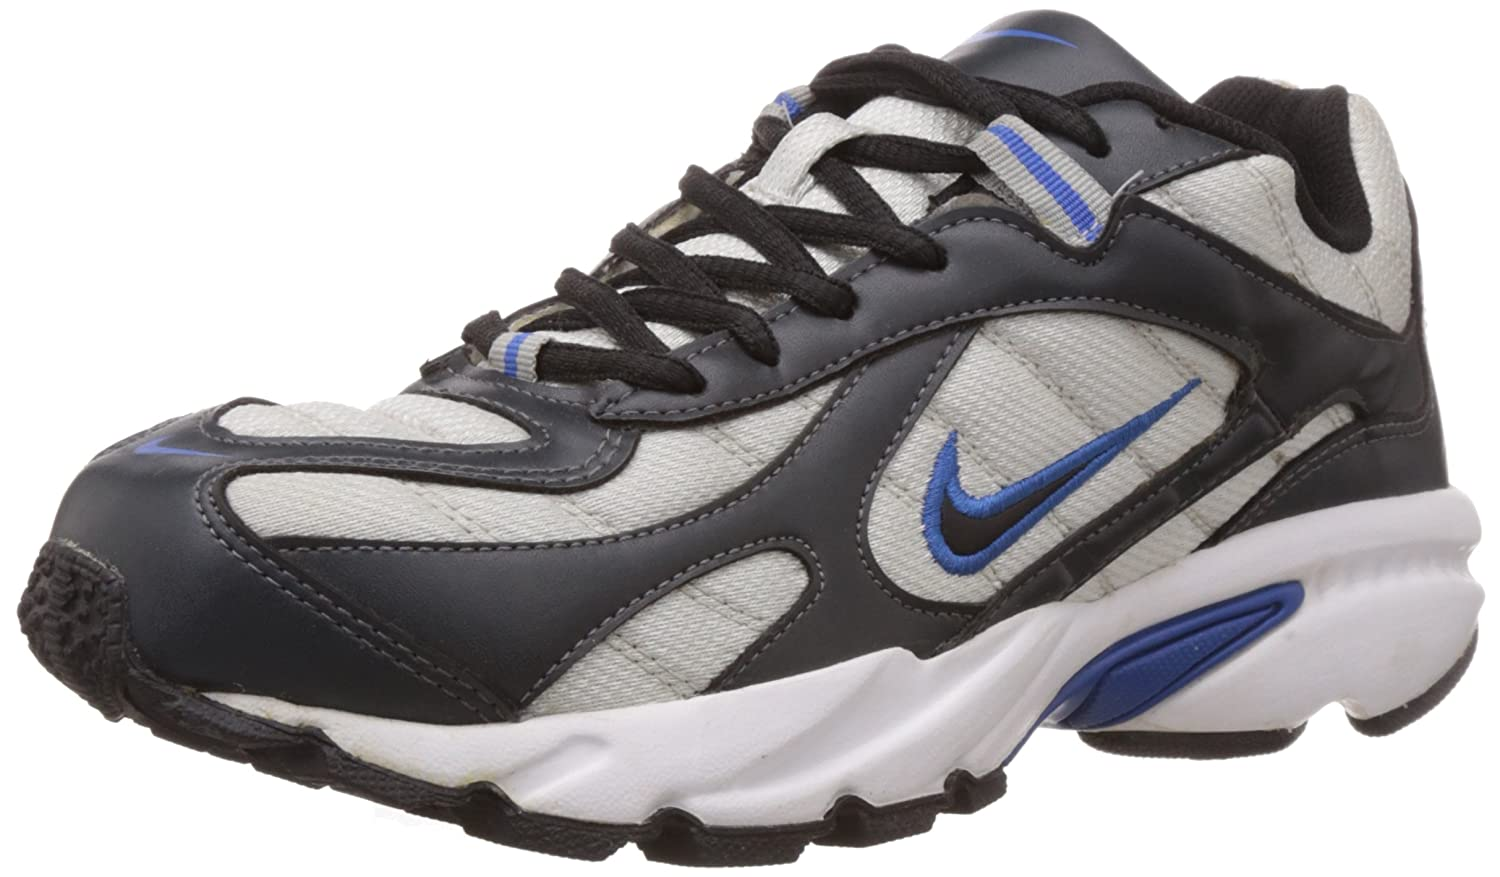 6fdf48261baf91 Nike Men's 2.04 in Metallic Silver, Anthracite, Signal Blue, White Running  Shoes -7 UK/India (41 EU)(8 US): Buy Online at Low Prices in India -  Amazon.in